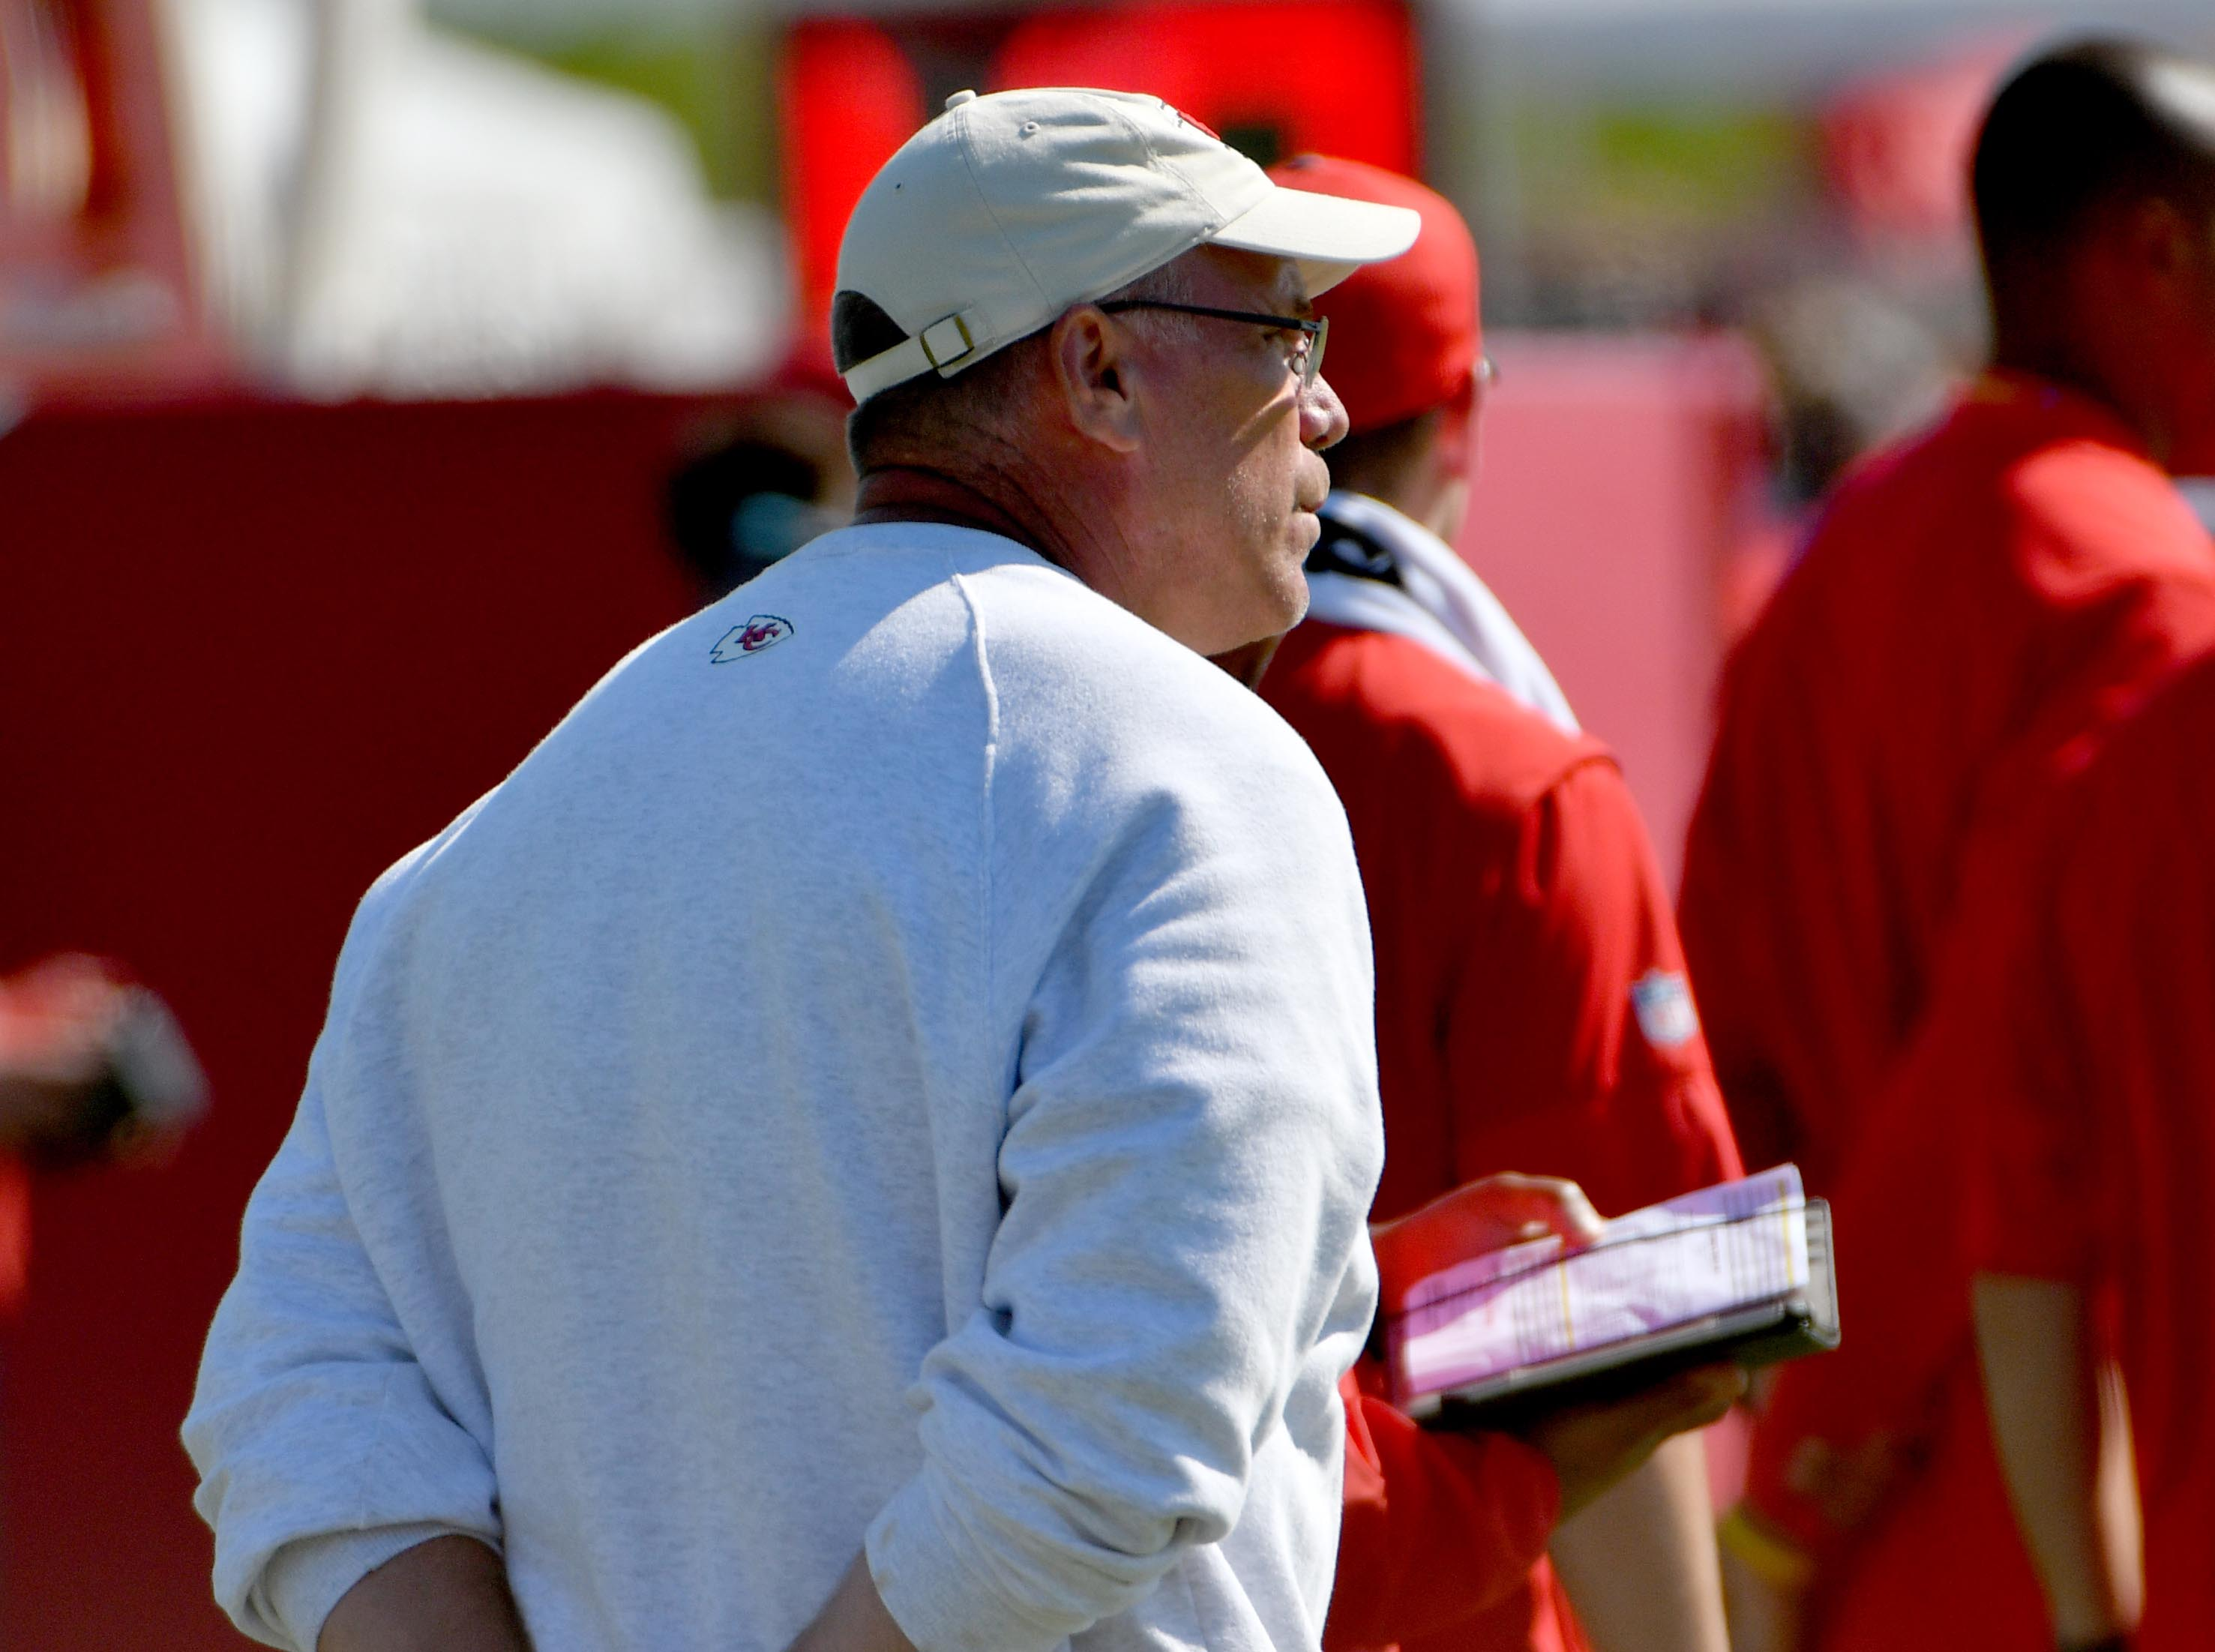 Should Shad Khan consider hiring John Dorsey as the Jags new GM?